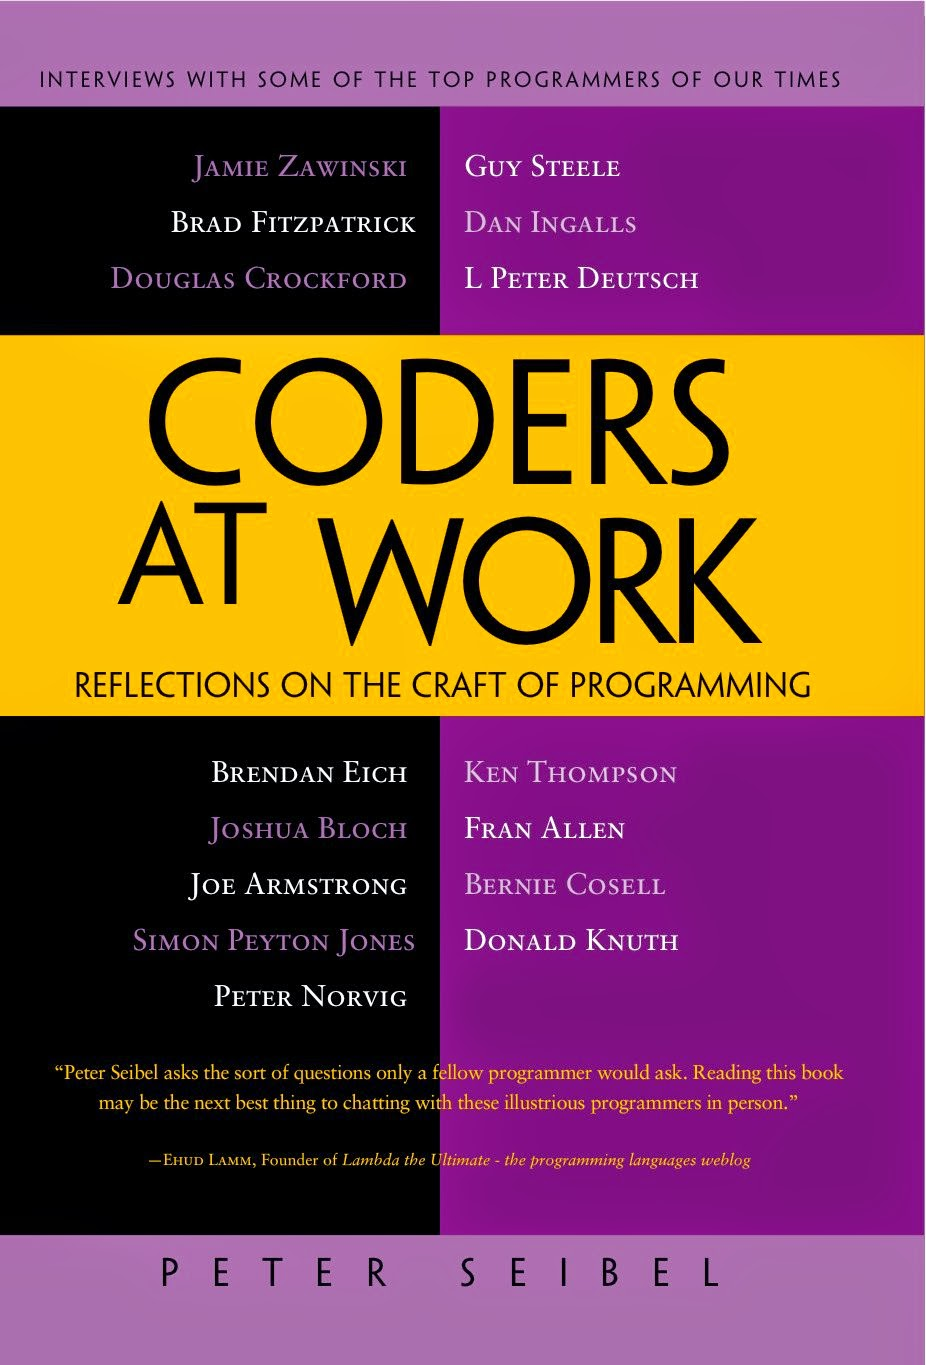 Books to become better coders